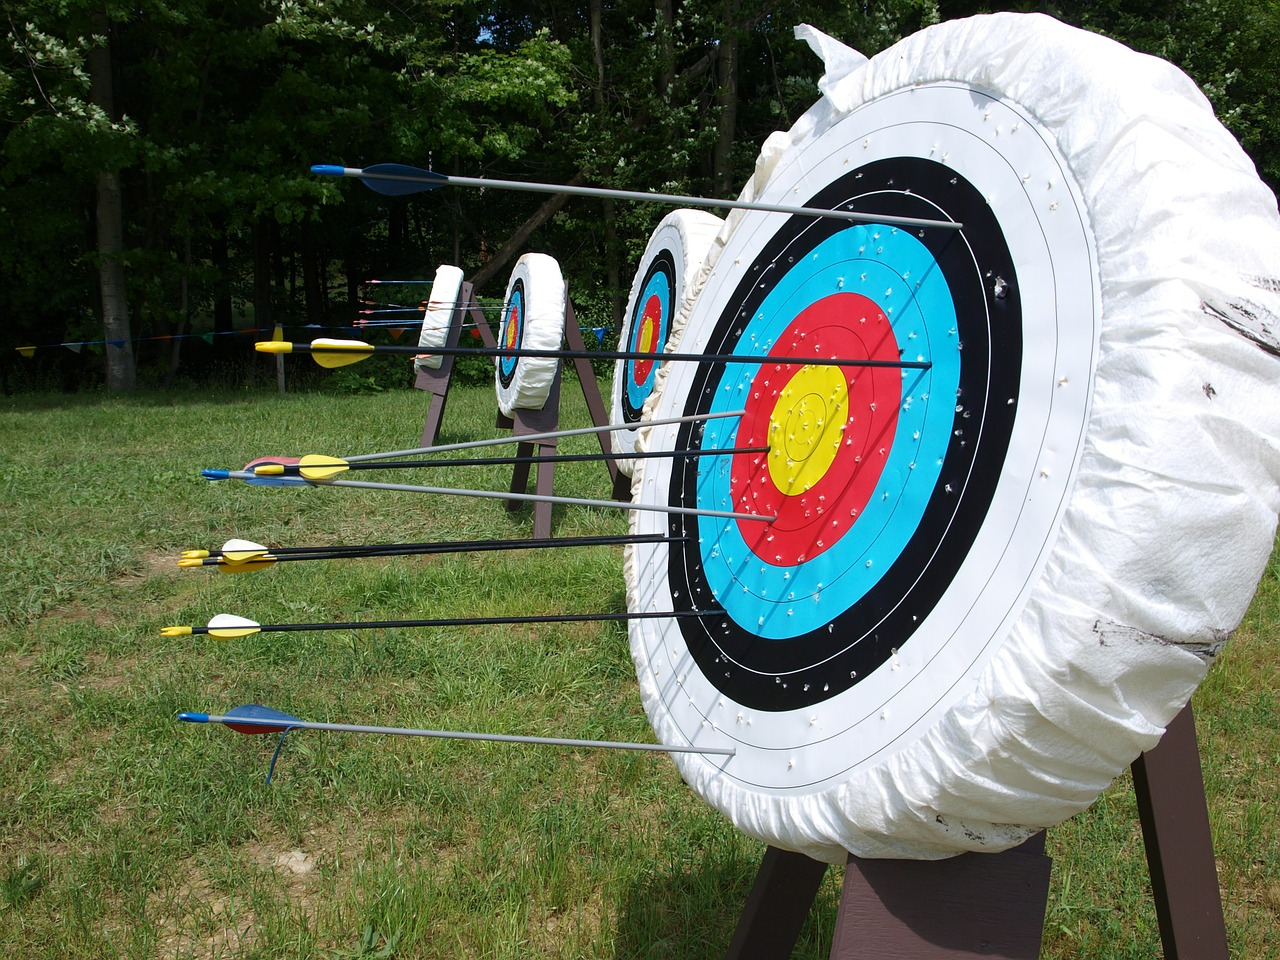 Archery Target Butt with Arrows. Buy Benel Archery Gift Certificates and Gift Cards at Gifted.PH online for anyone in Manila Philippines